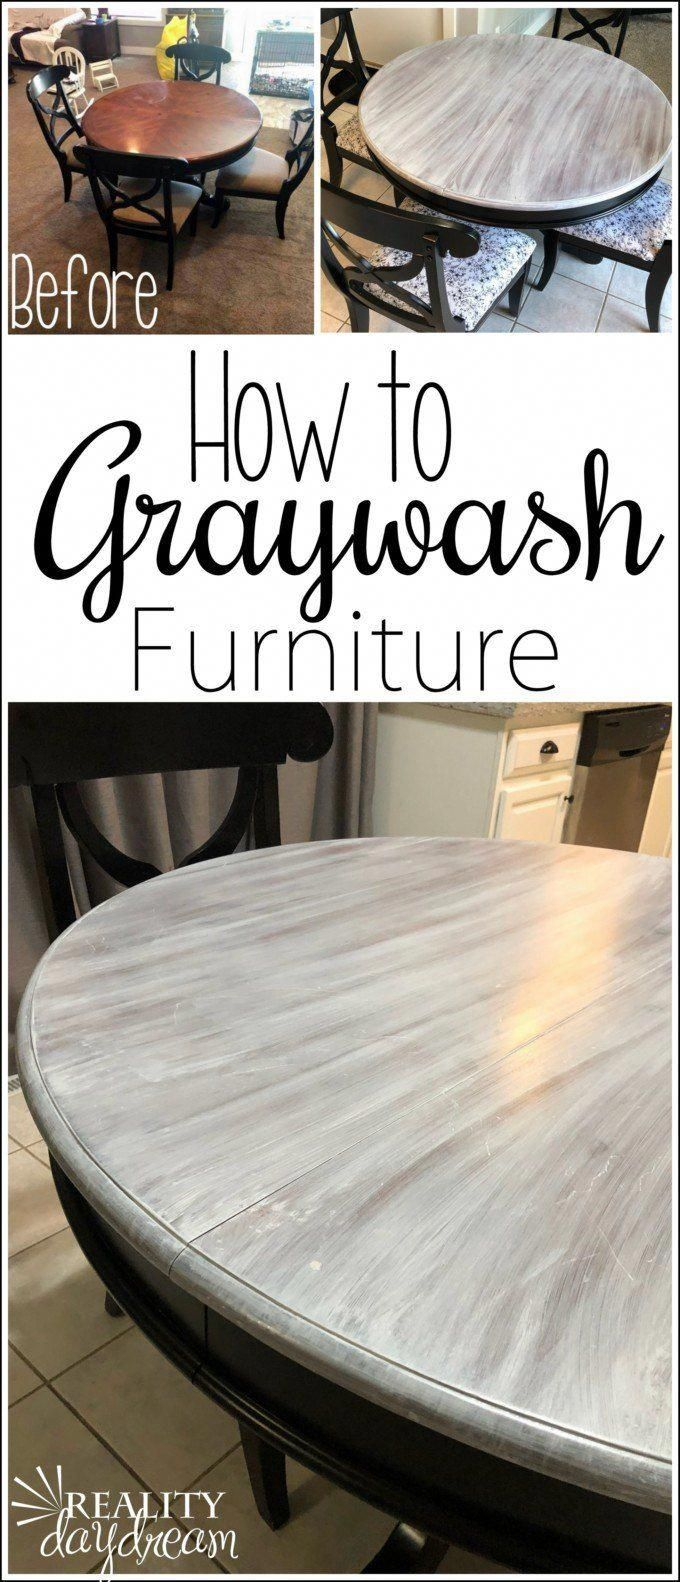 Learn how to graywash furniture itus suuuuuper easy reality